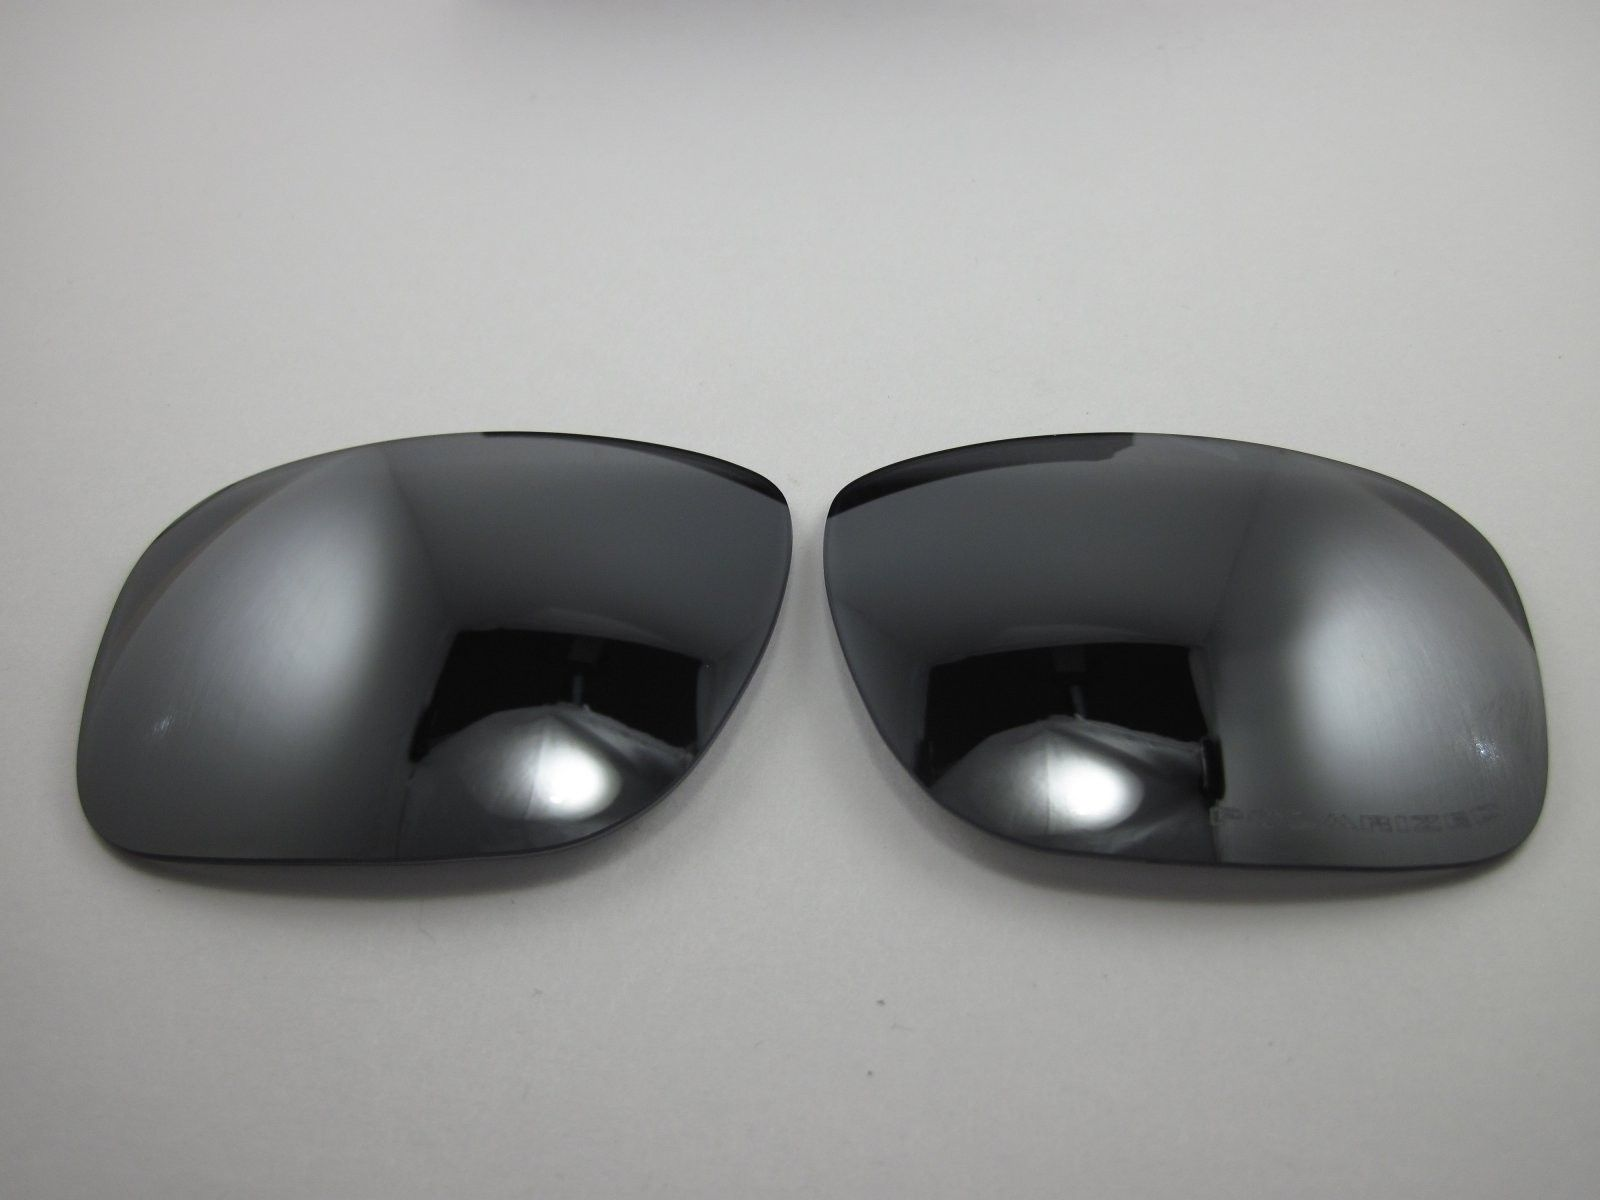 New OEM Holbrook Lenses Black Polarized W/ Box - IMG_0293.JPG